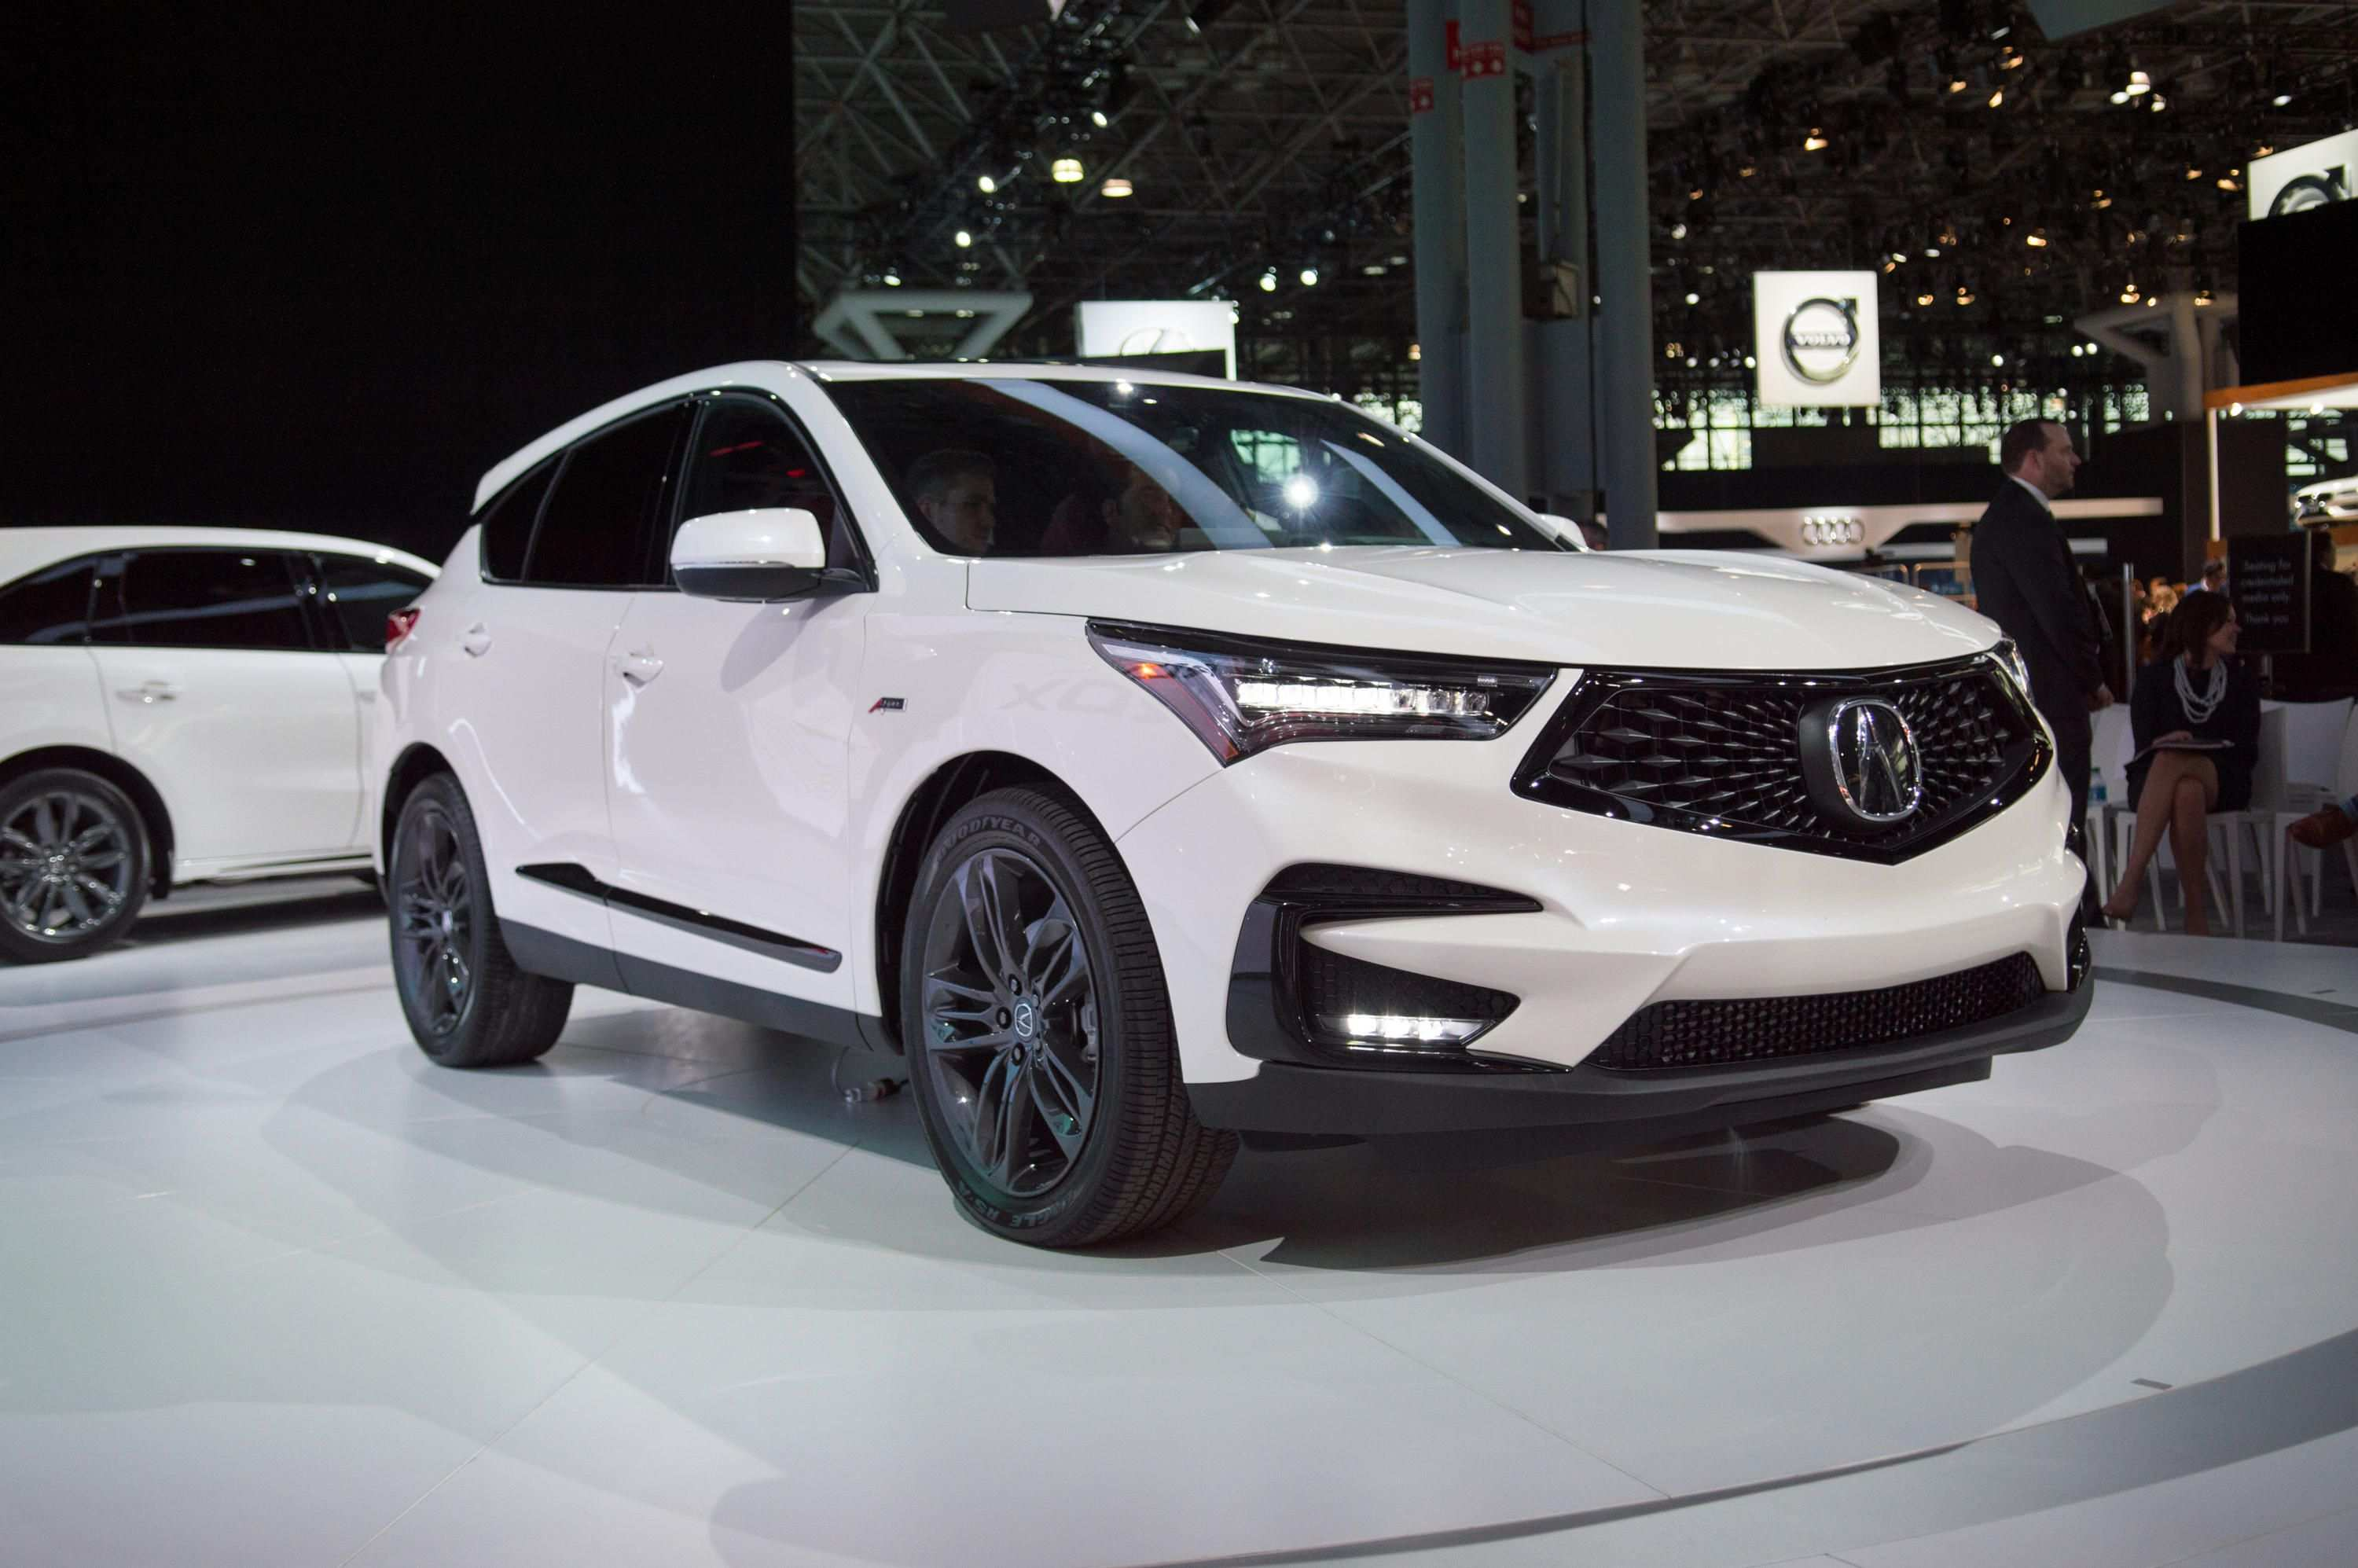 27 Best Review 2019 Acura Rdx Release Date First Drive with 2019 Acura Rdx Release Date